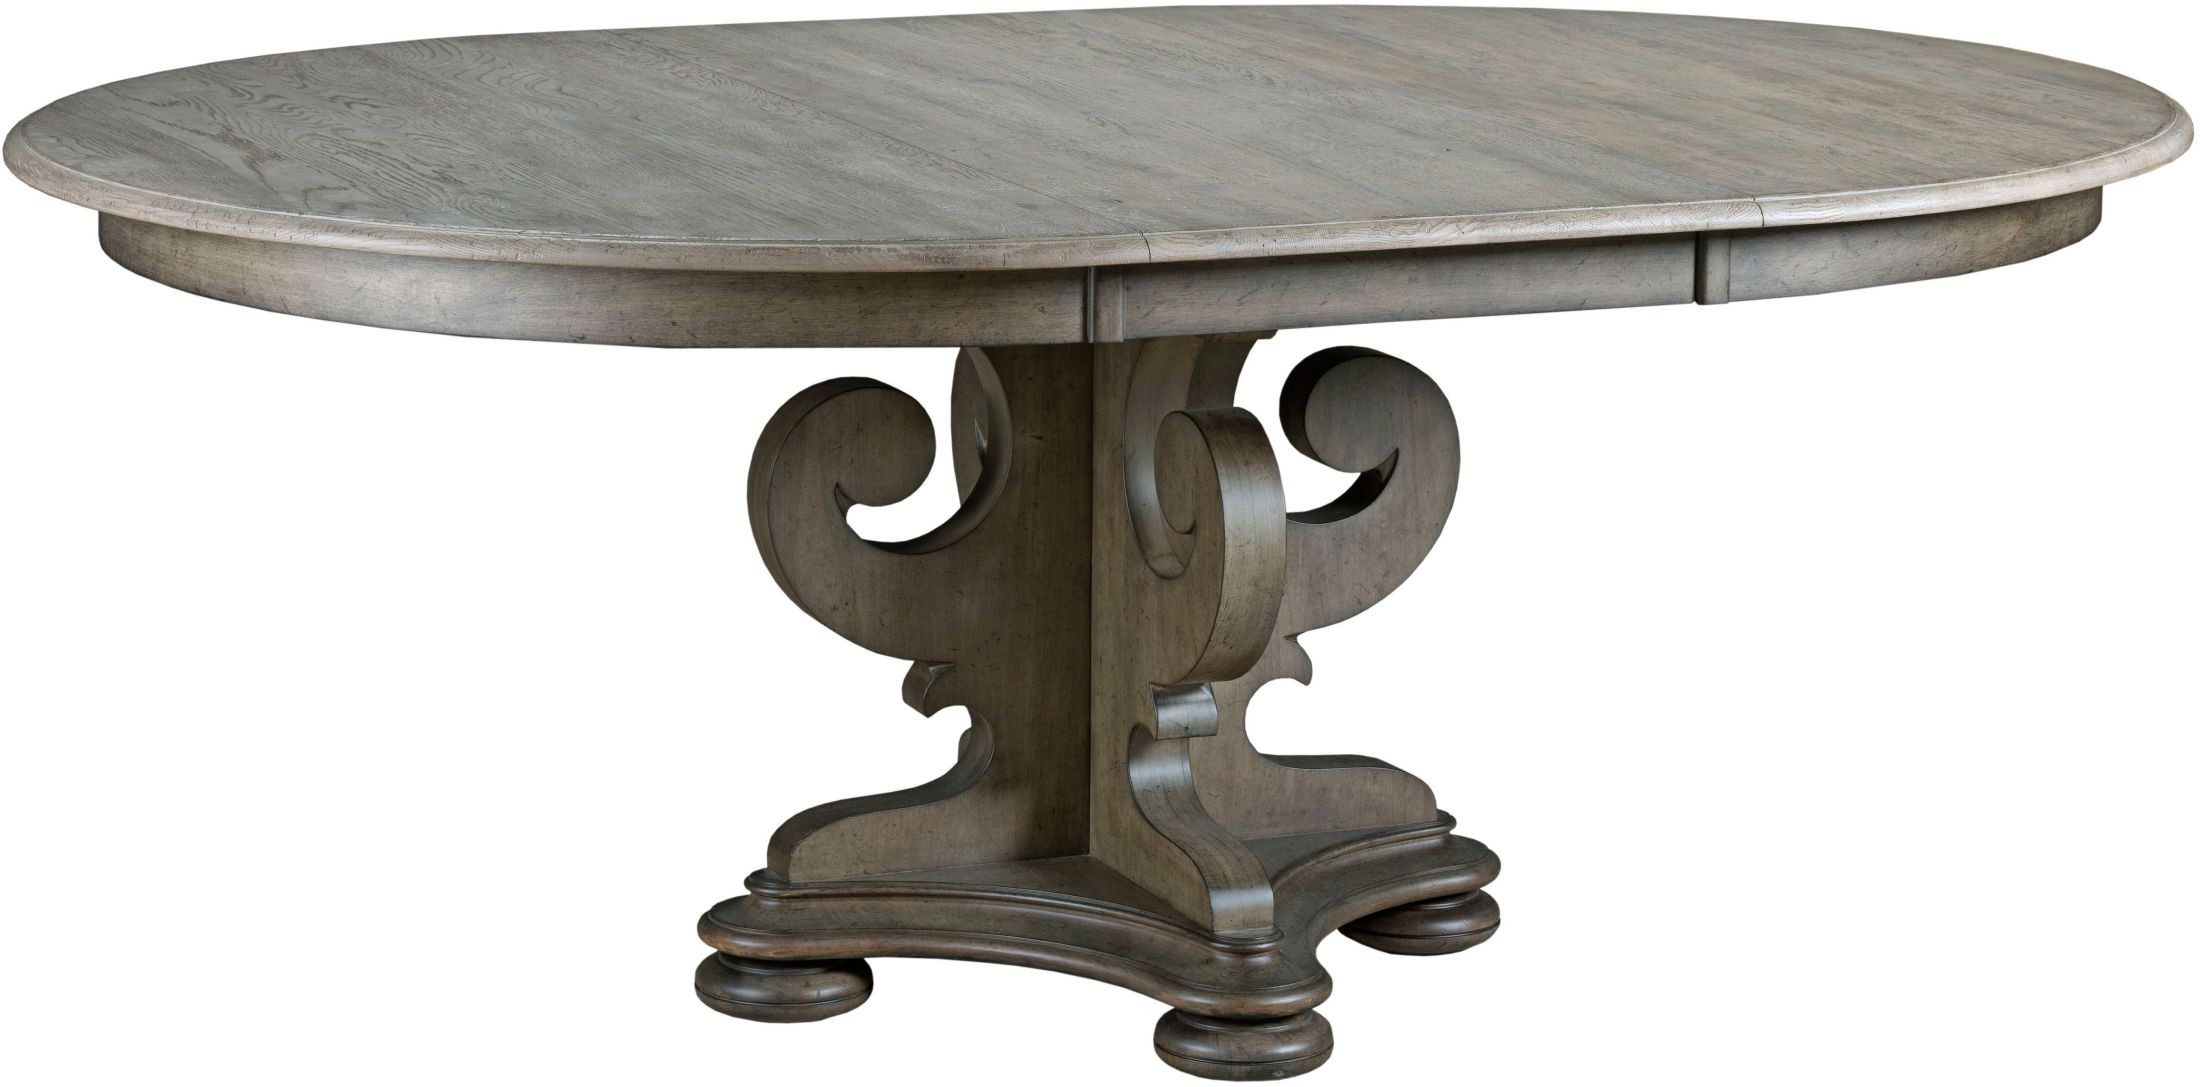 Greyson grant round pedestal extendable dining table from for Greyson dining table